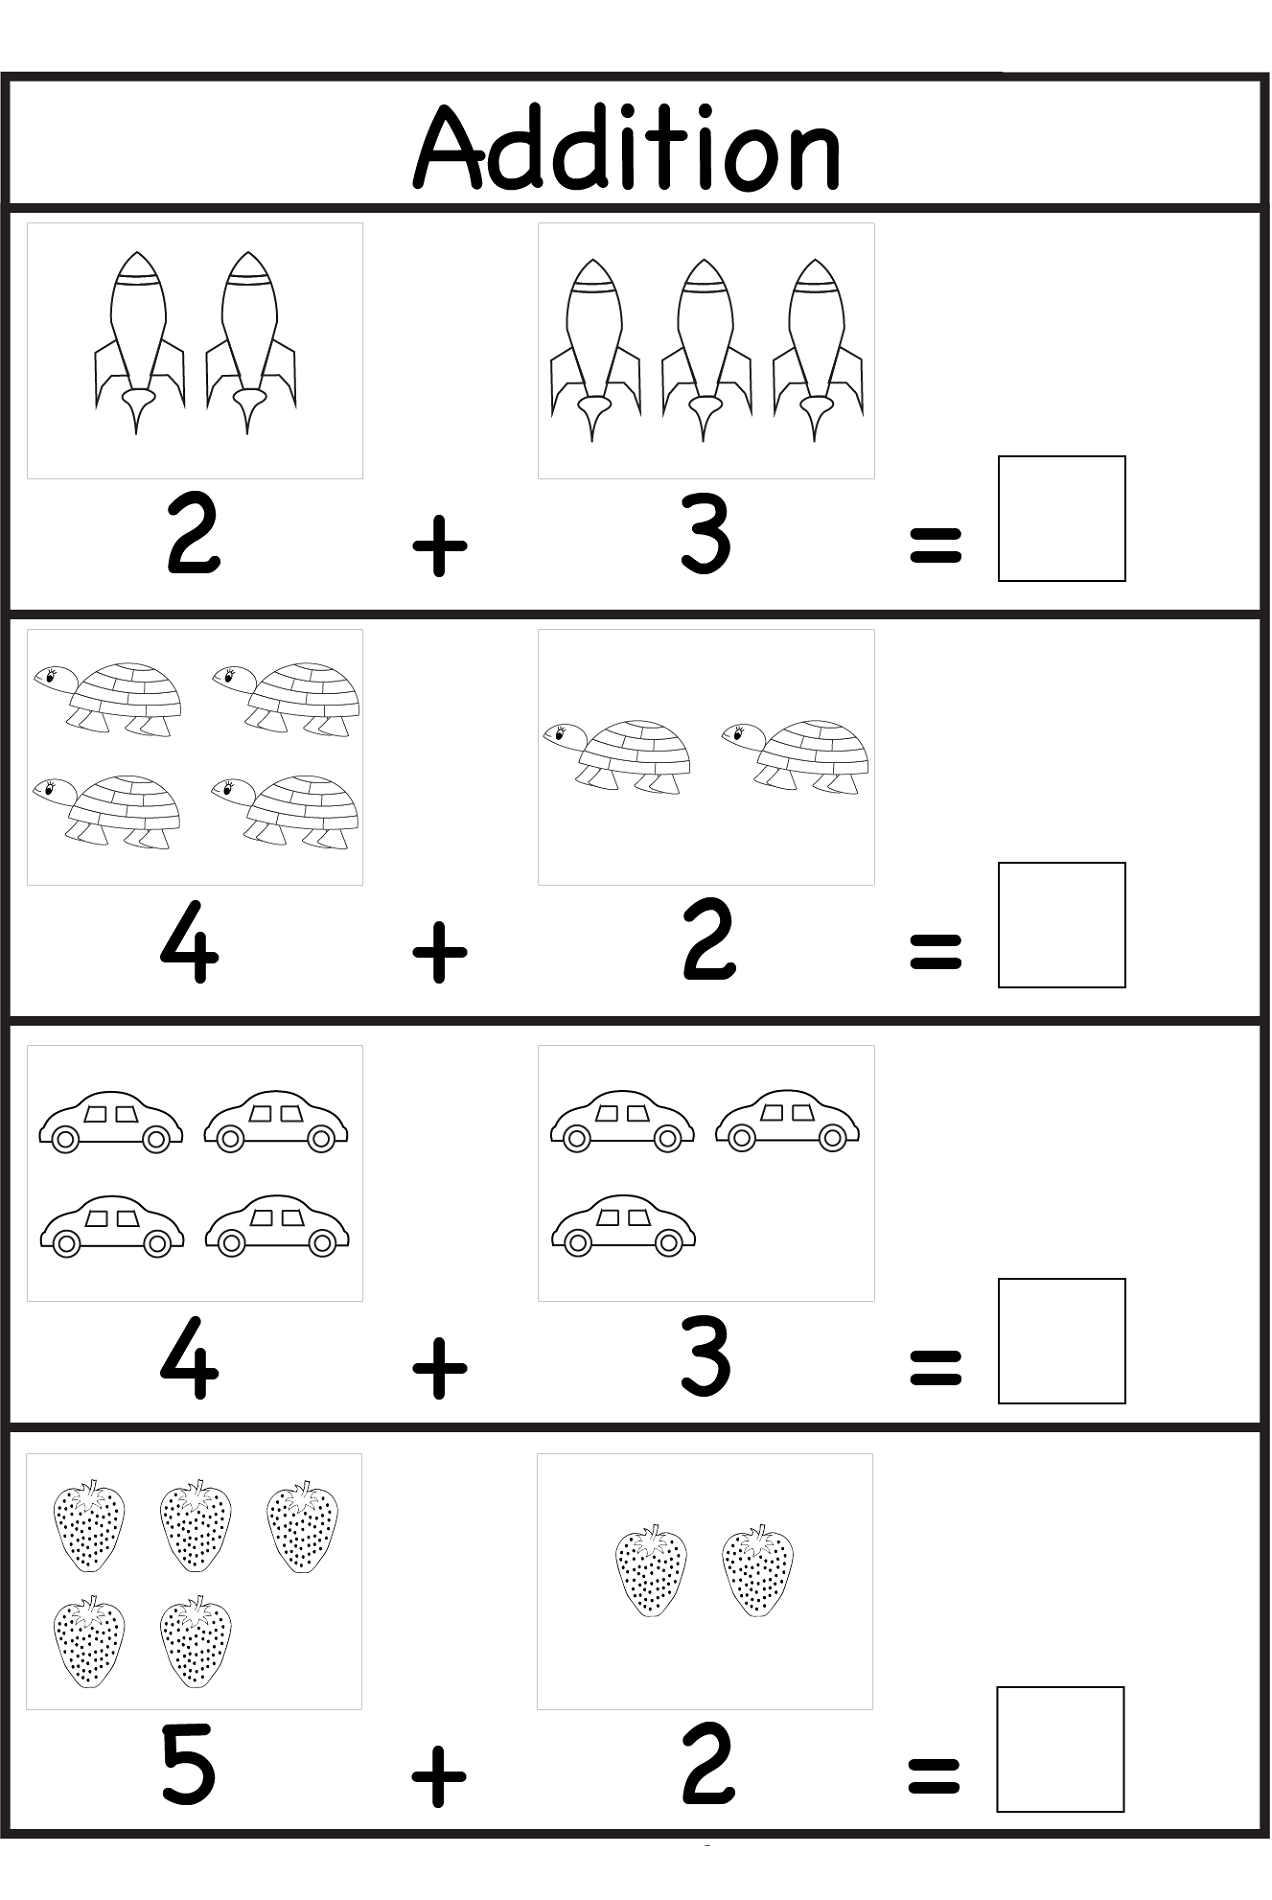 Worksheet Maths Worksheets For 6 Year Olds Mikyu Free Worksheet – Maths for 6 Year Olds Worksheets